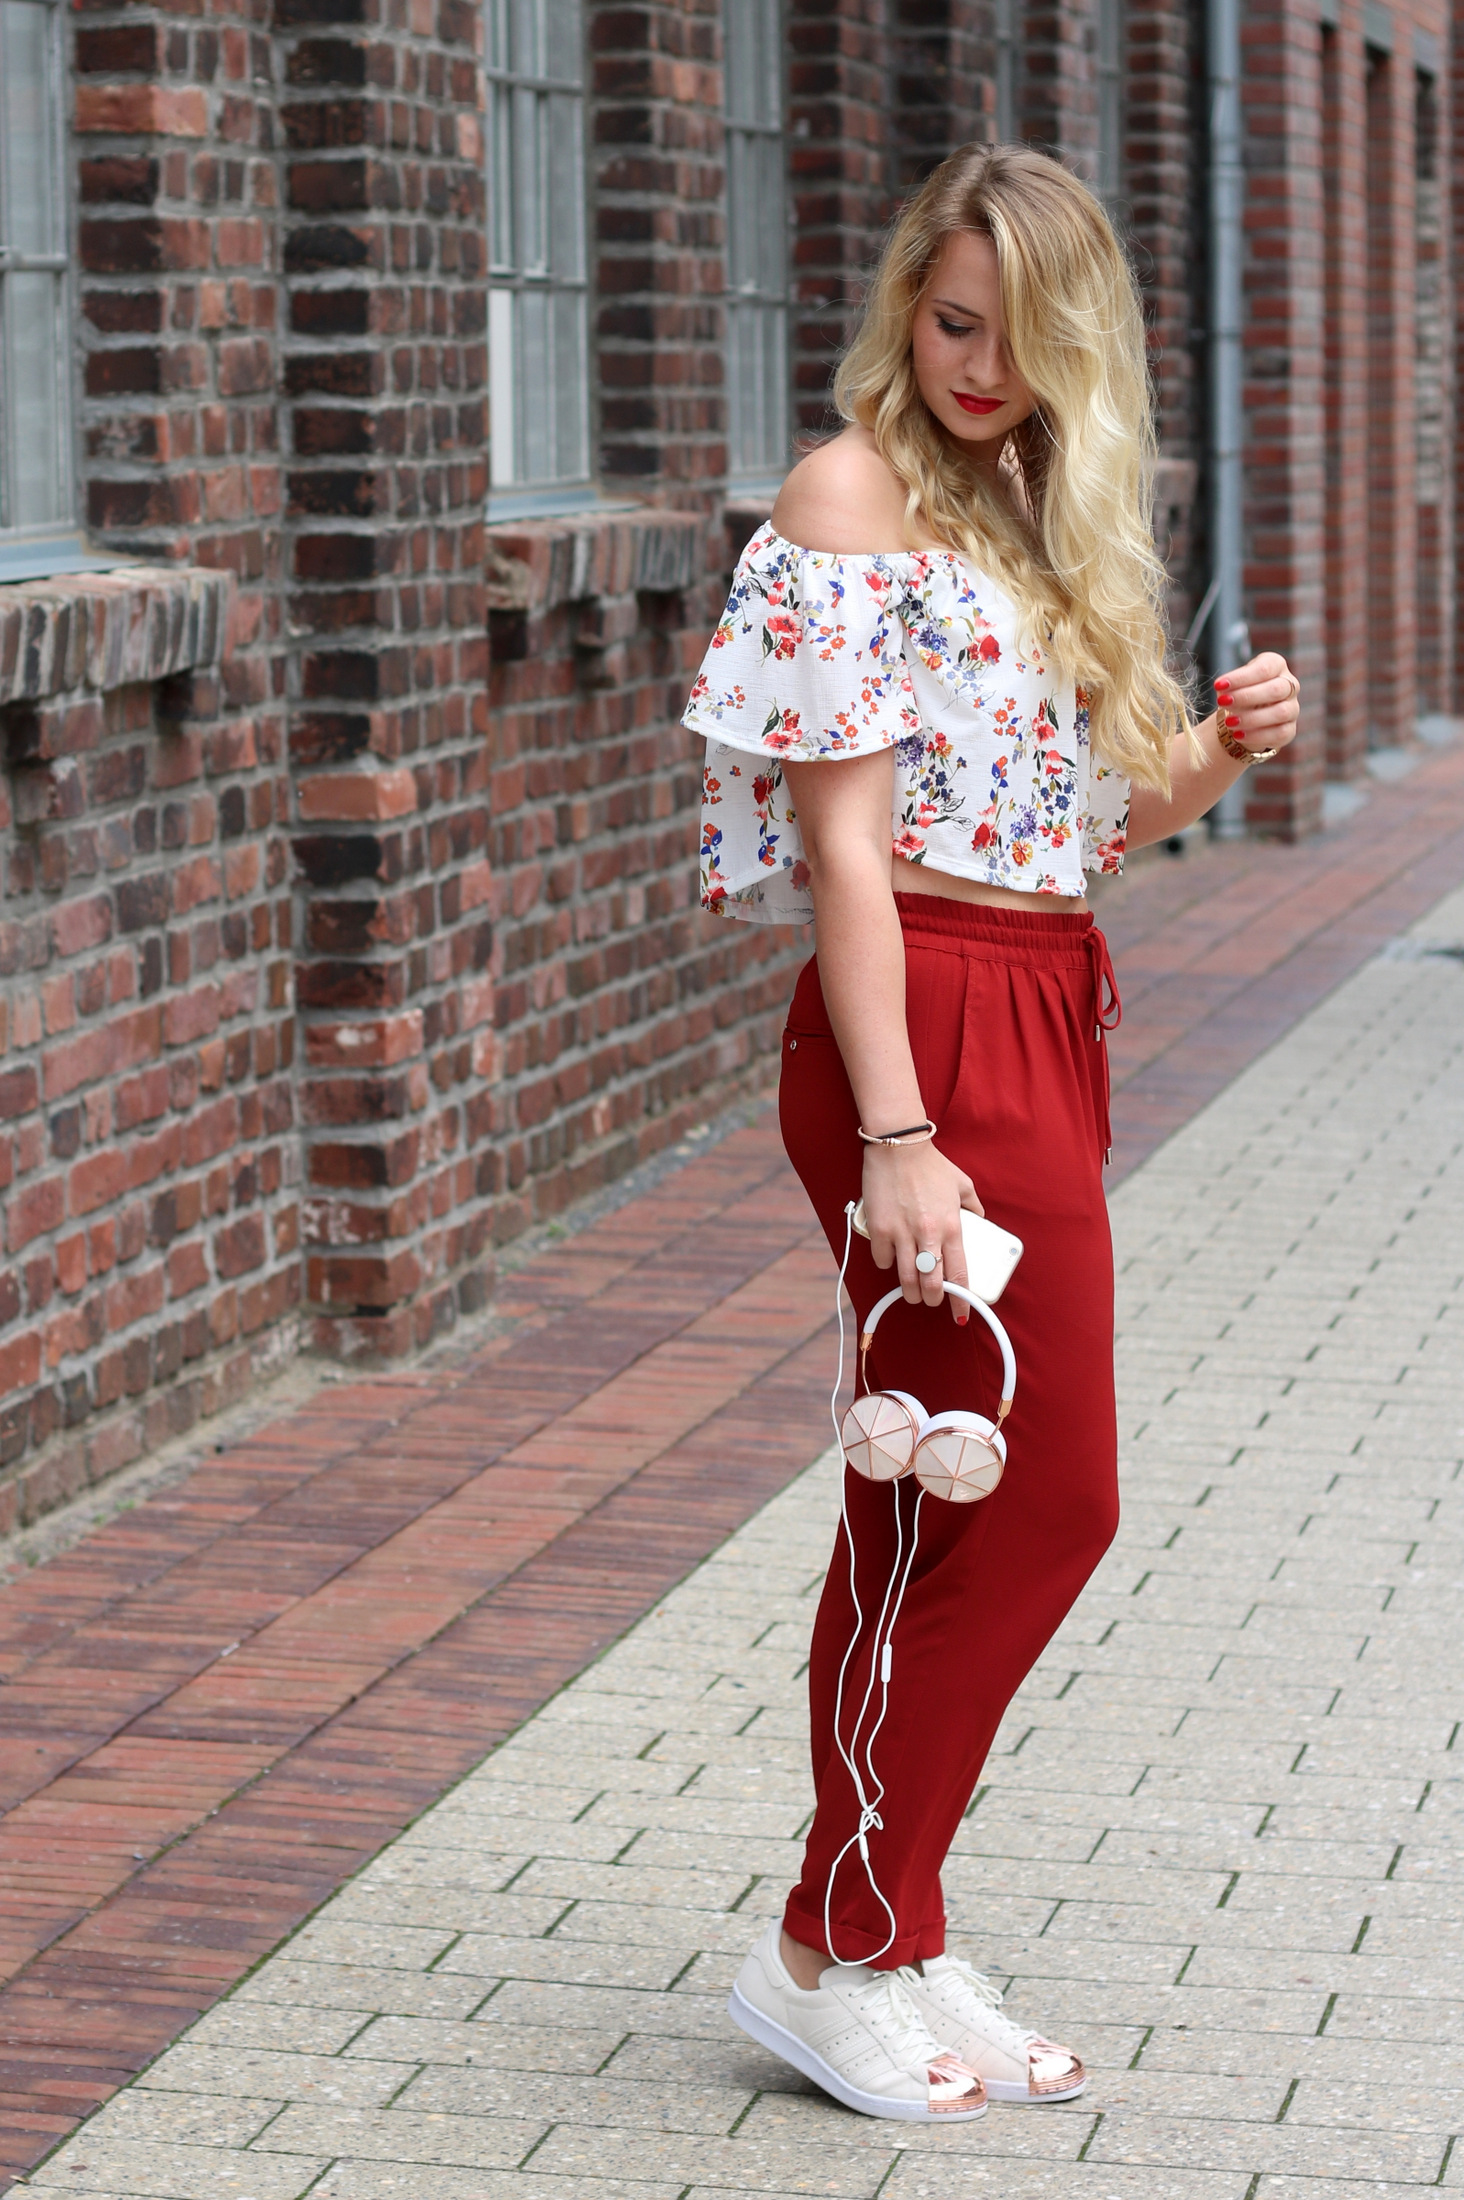 frends-headphones-kopfhörer-audio-musik-music-outfit-summer-early-look-zara-mrsbrightside (1)